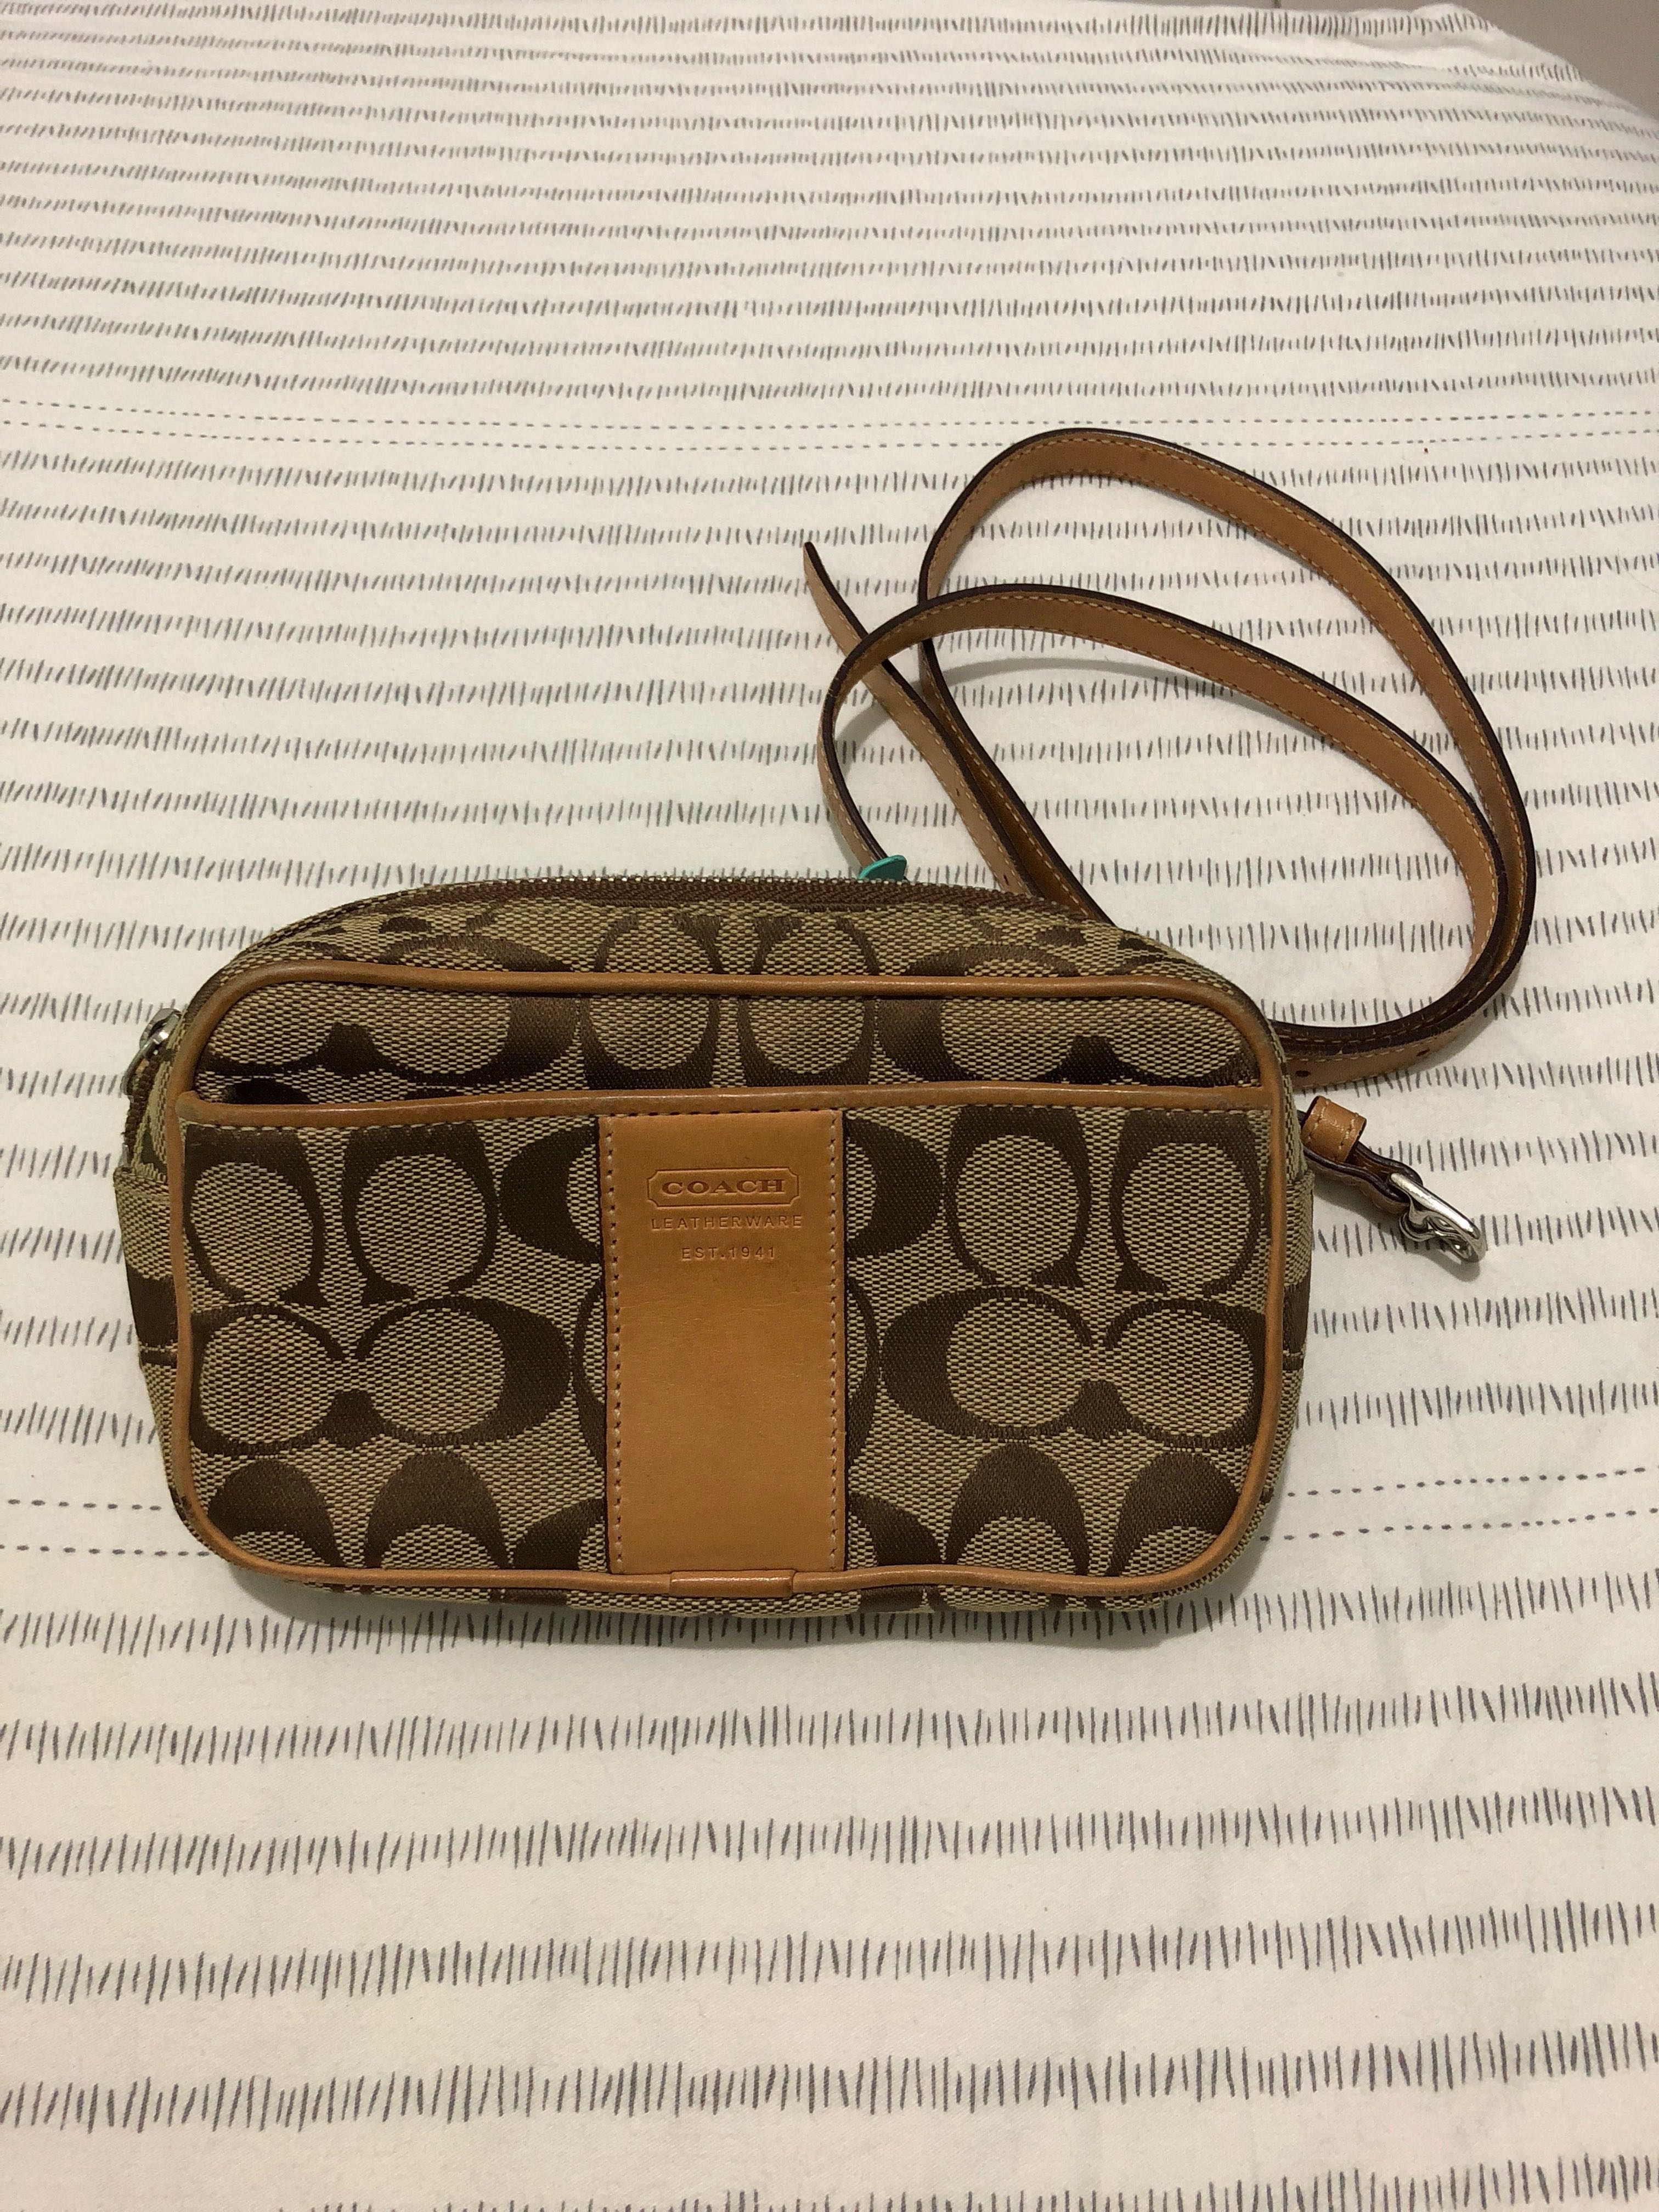 18522d561212 NO TRADE!) Coach Waistpouch, Luxury, Bags & Wallets, Others on Carousell